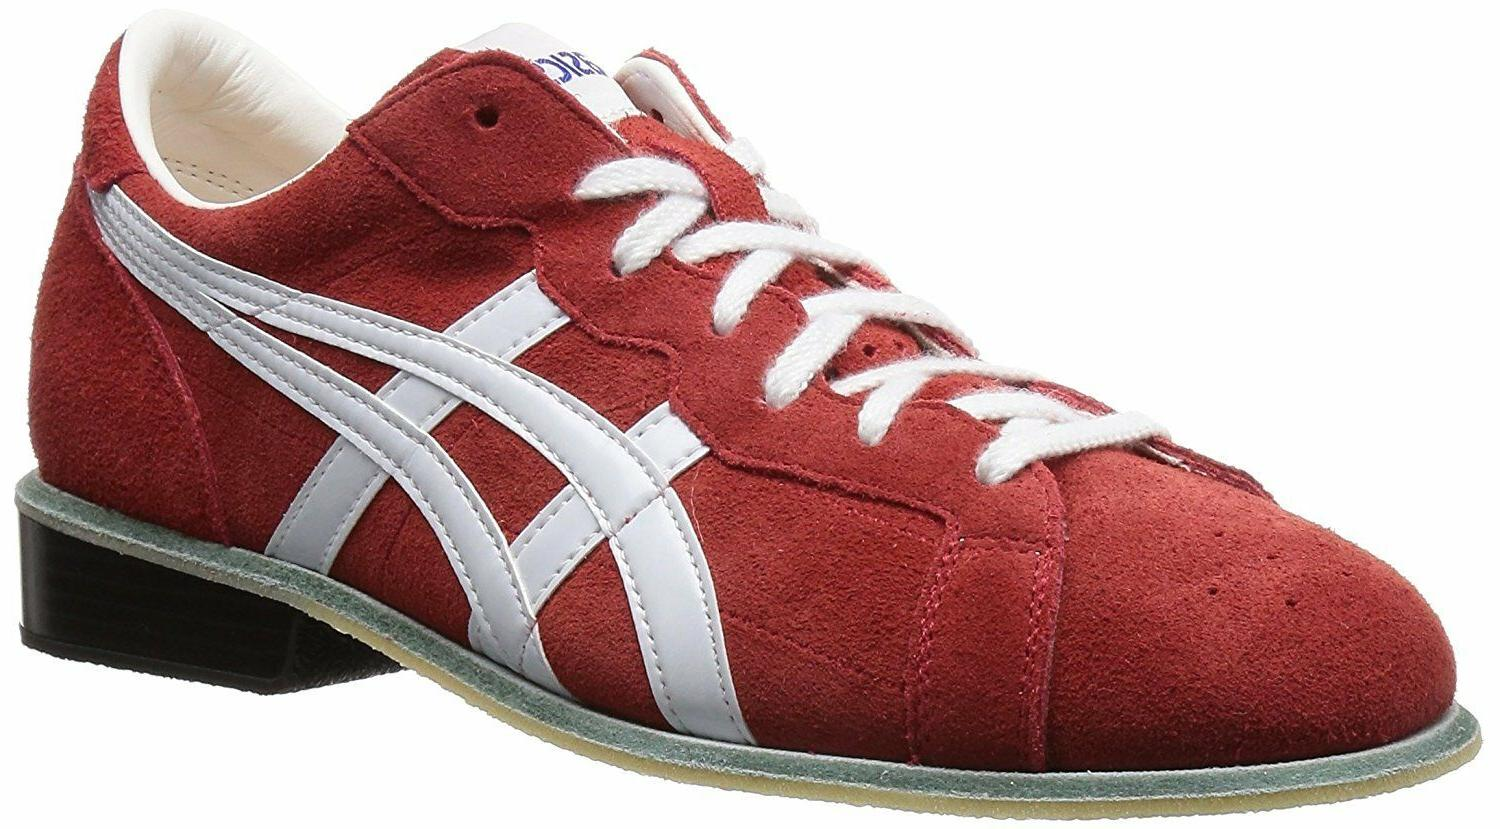 weight lifting shoes 727 red white leather